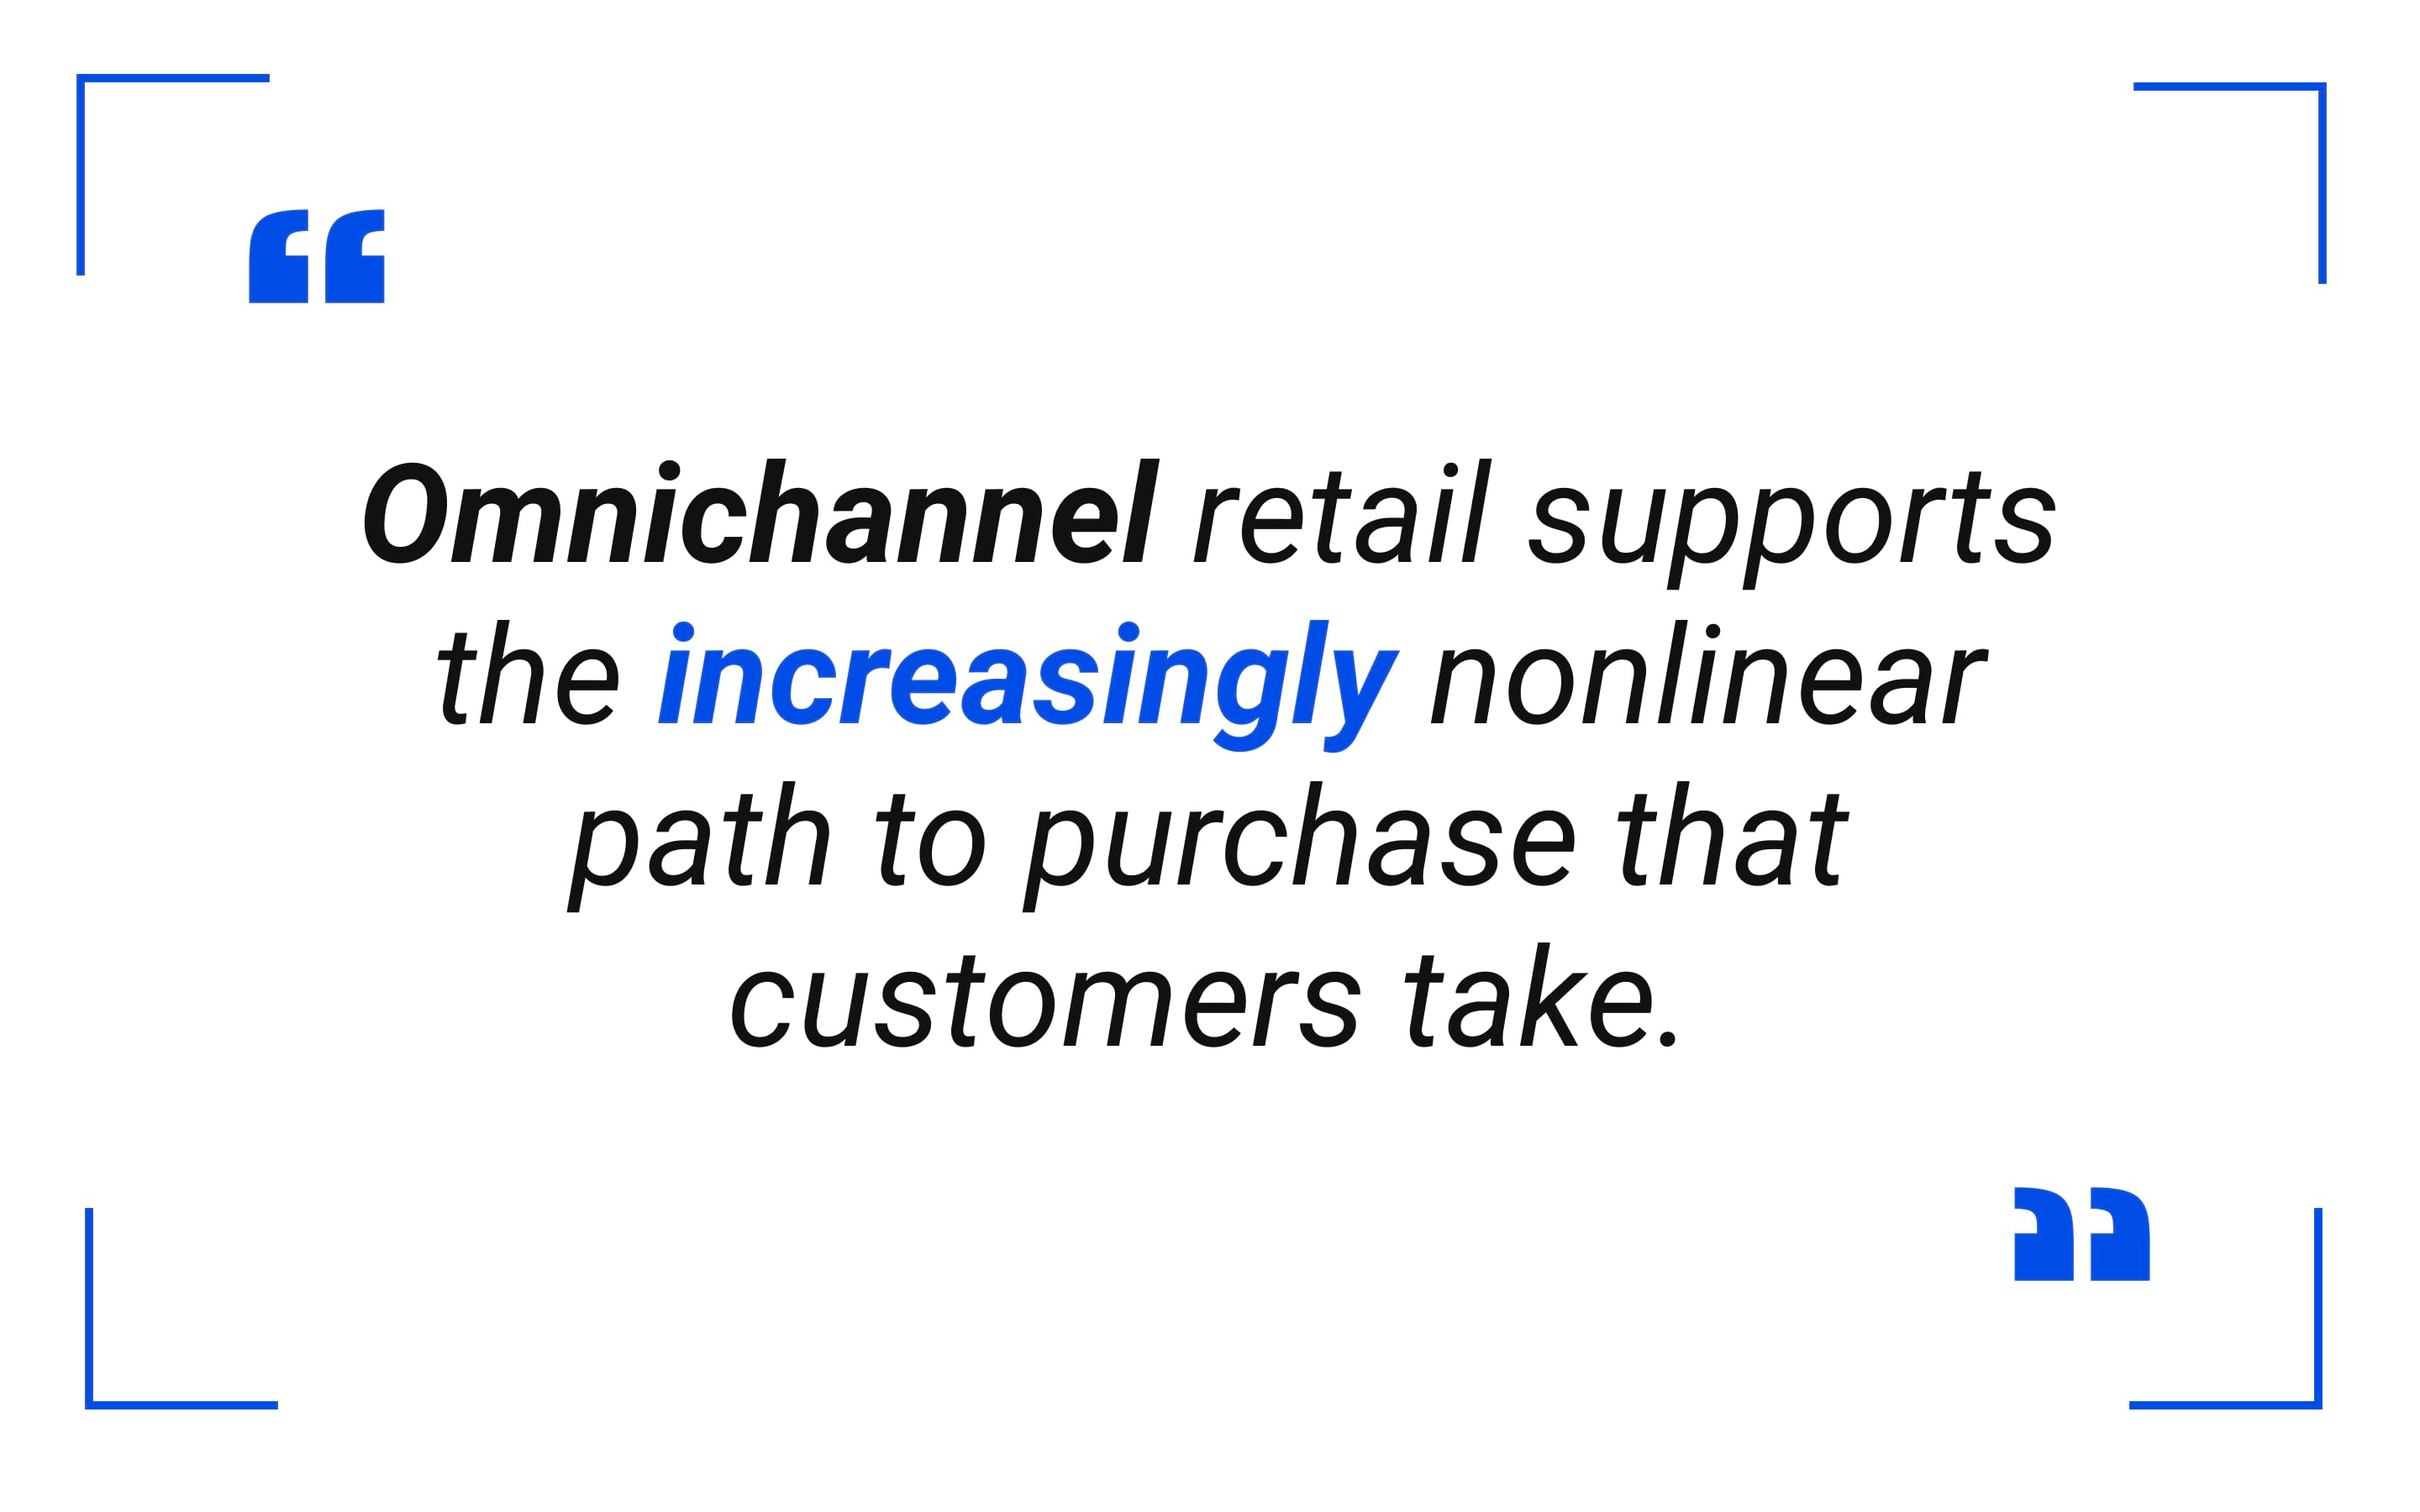 Omnichannel retail supports the increasingly nonlinear path to purchase that customers take